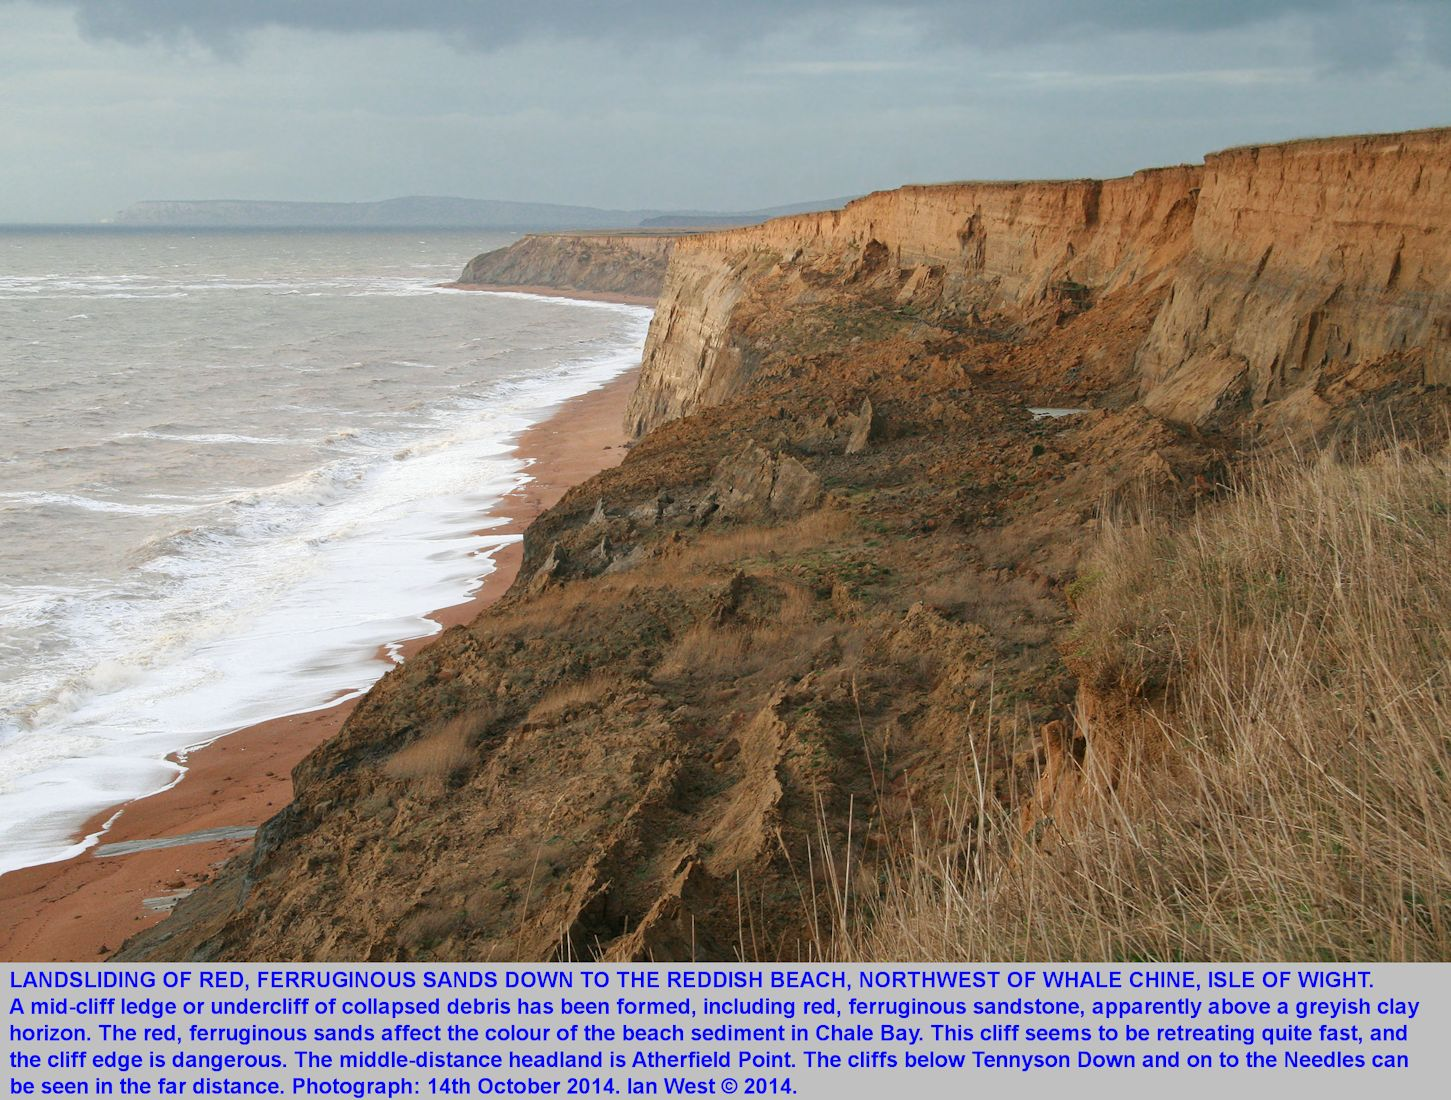 Red debris from the Ferruginous Sands Formation in a coastal landslip, northwest of Whale Chine, Isle of Wight, 14th December 2014